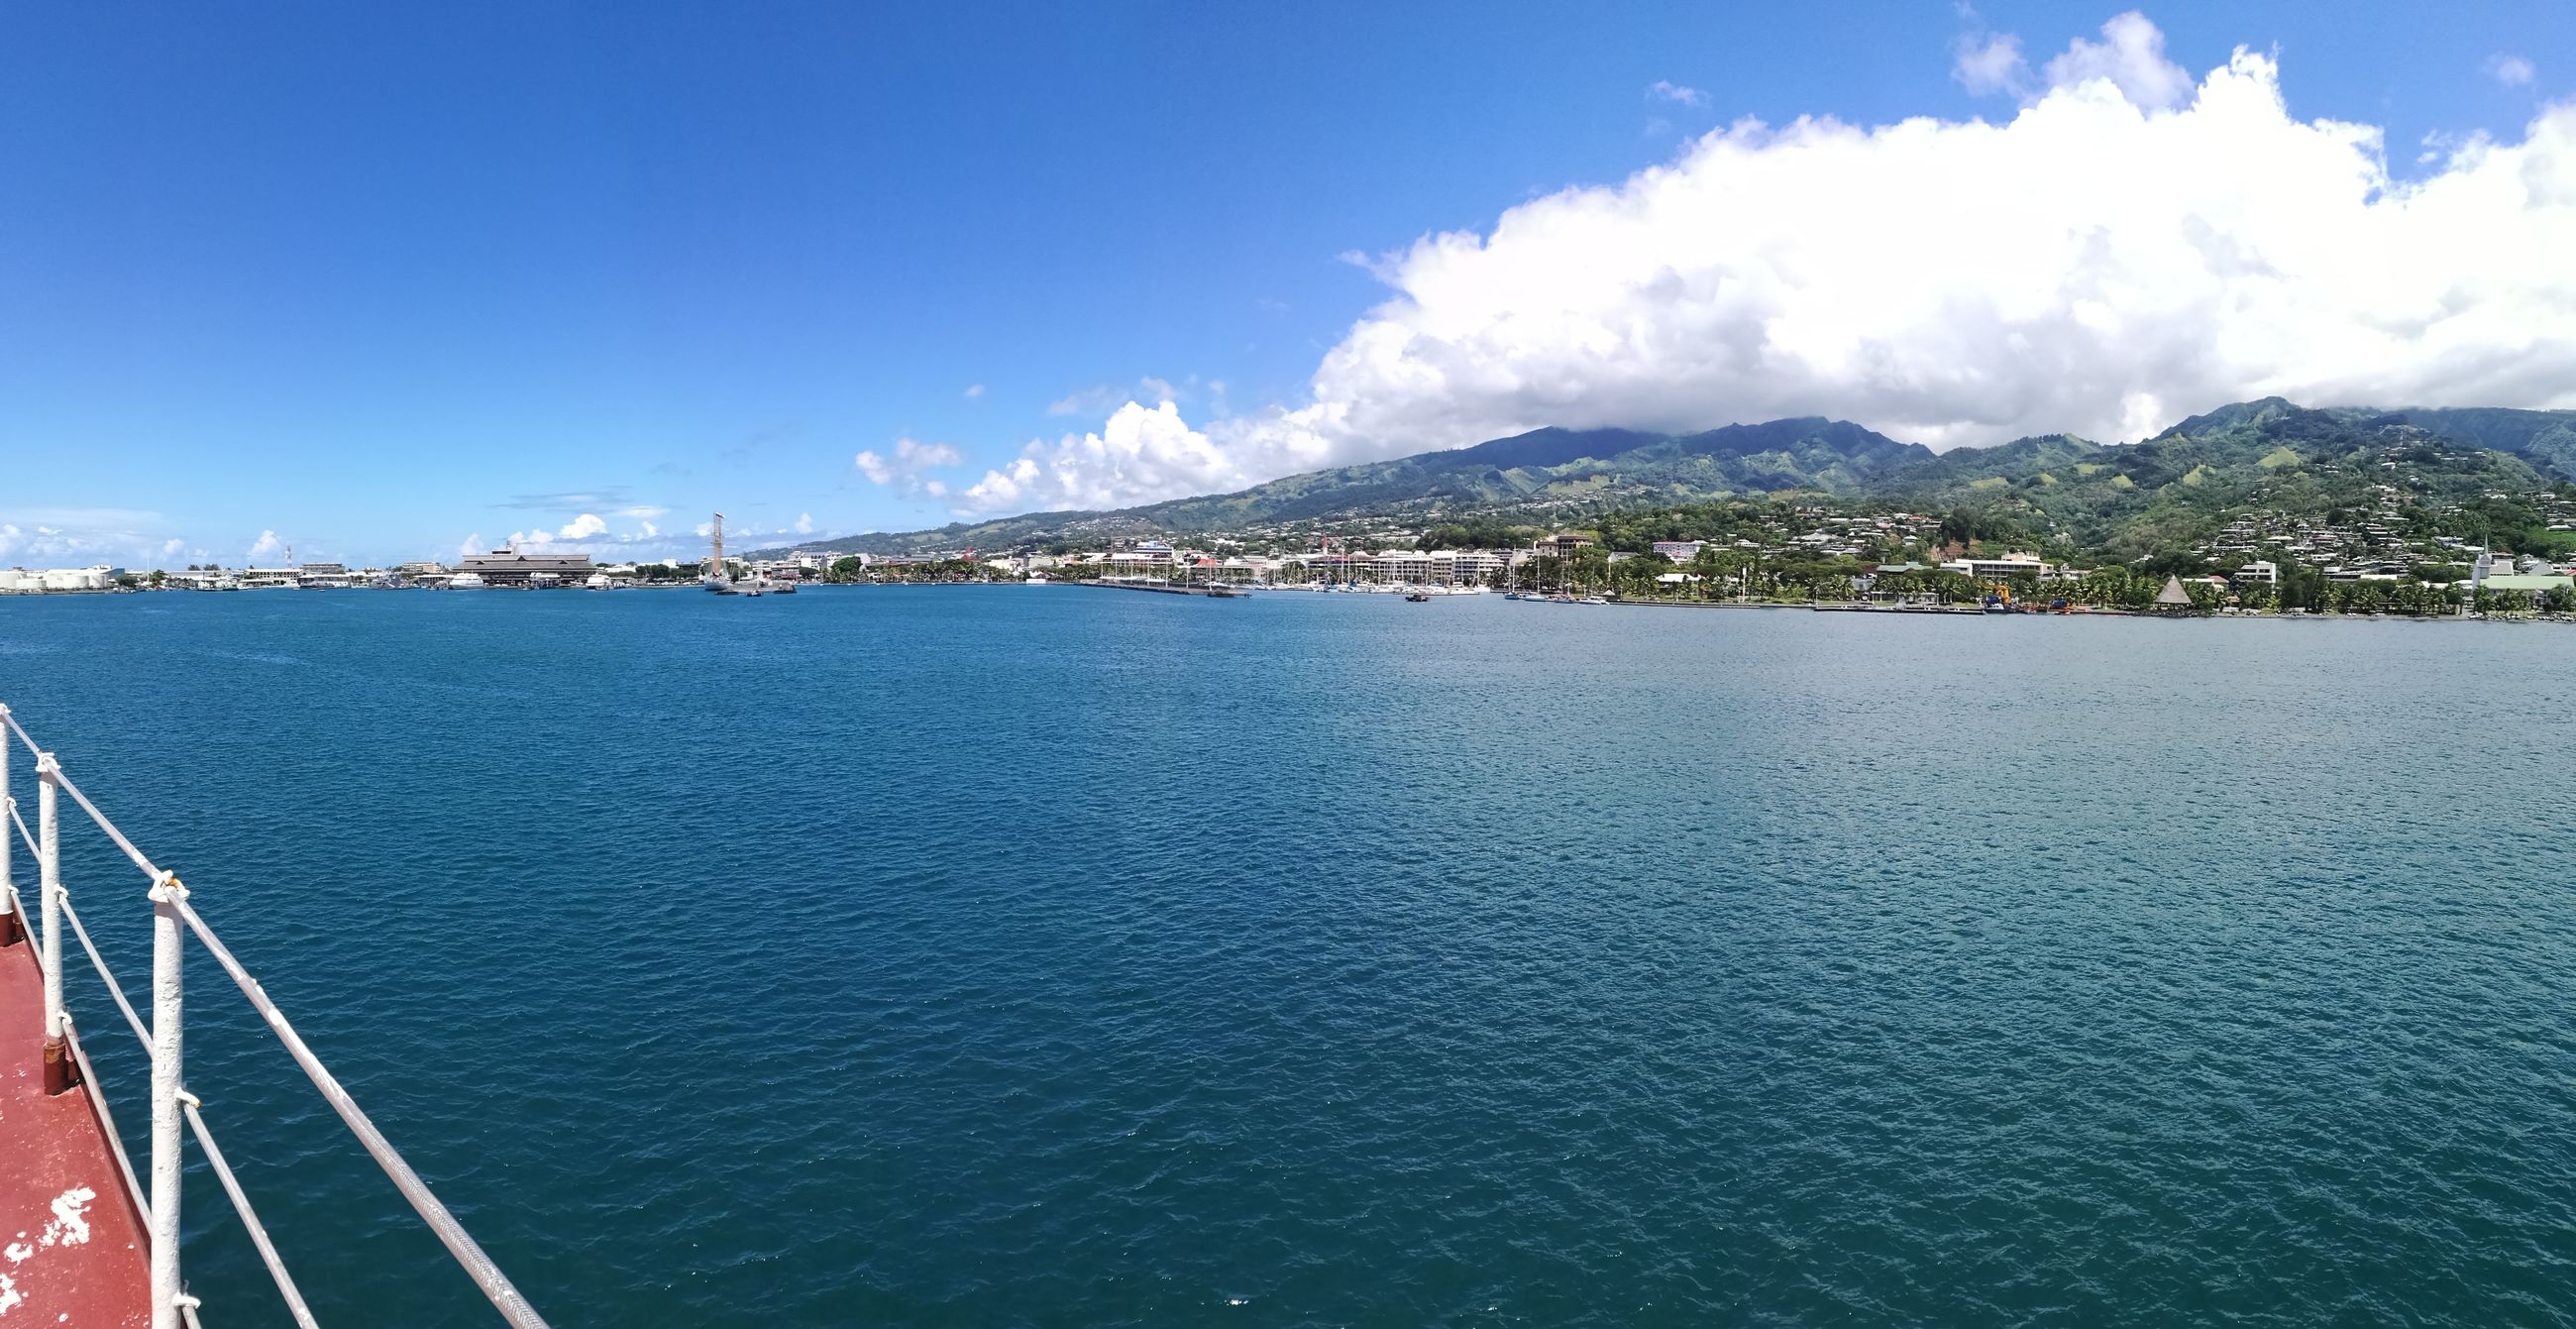 water, blue, sea, sky, no people, nautical vessel, day, outdoors, beauty in nature, nature, architecture, cityscape, mountain